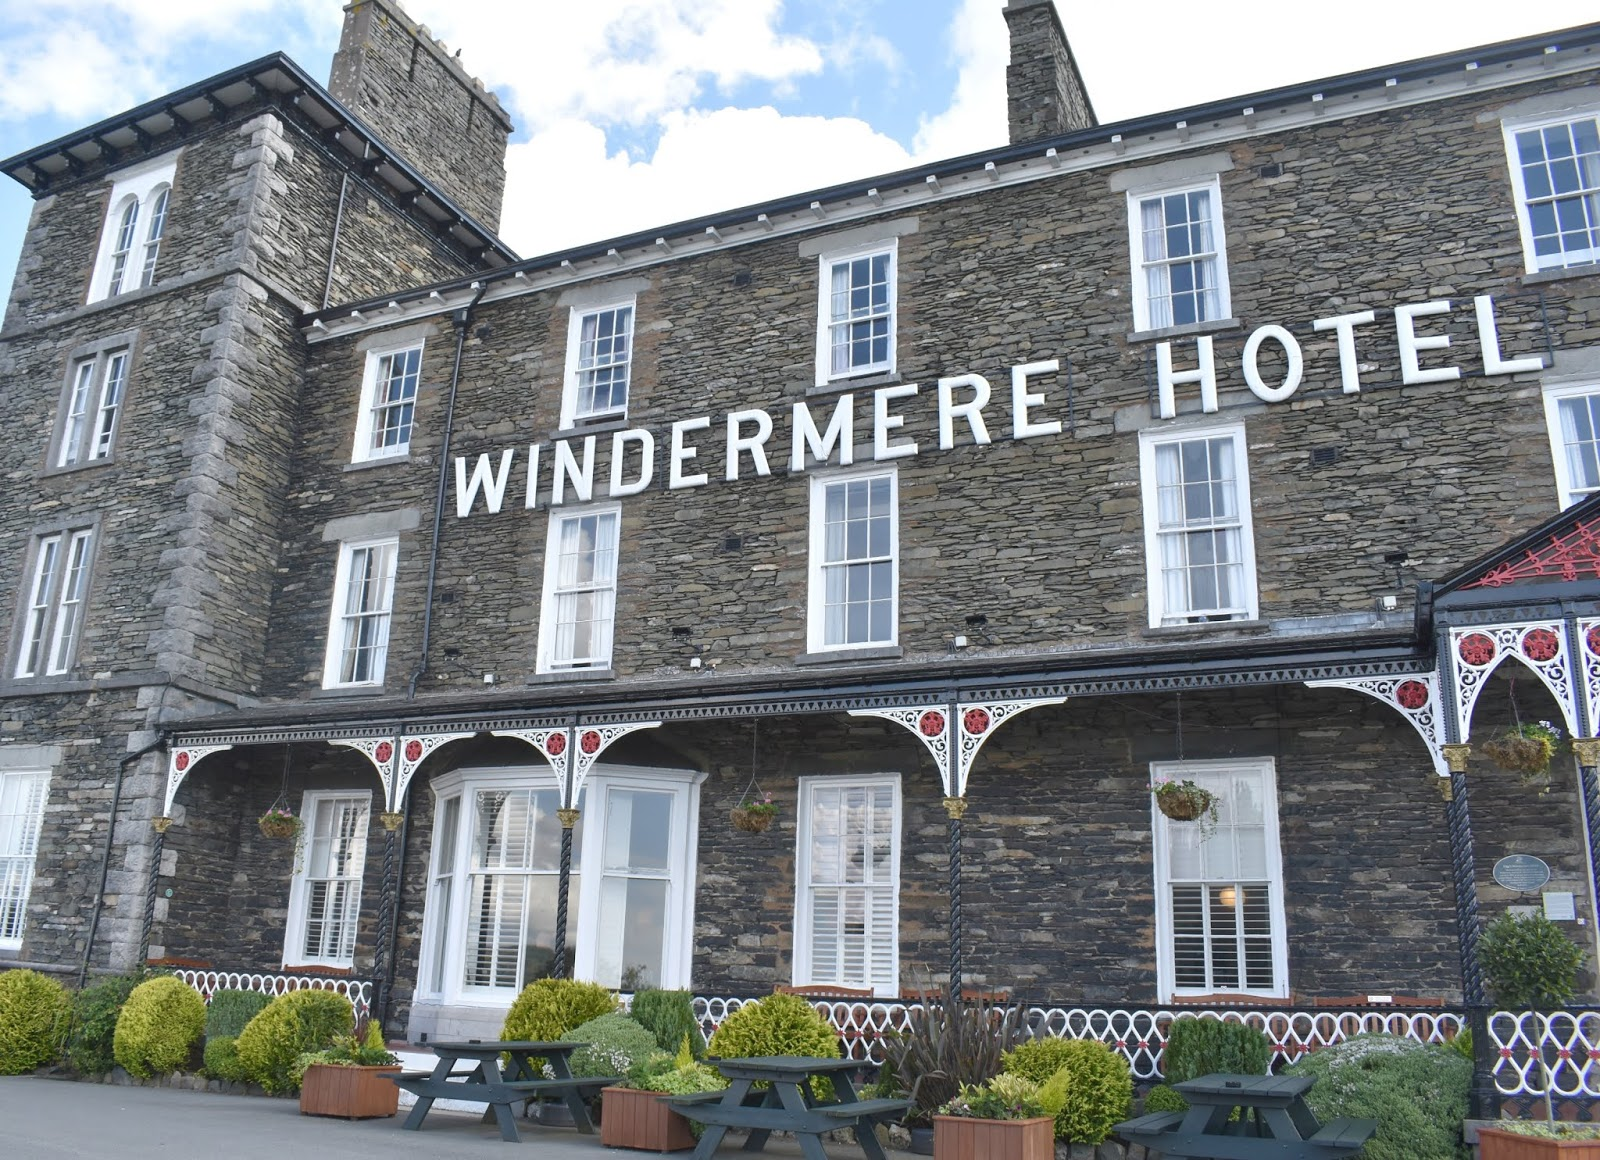 Affordable Break Lake District - Sparkling Sundays The Windermere Hotel with ukbreakaways